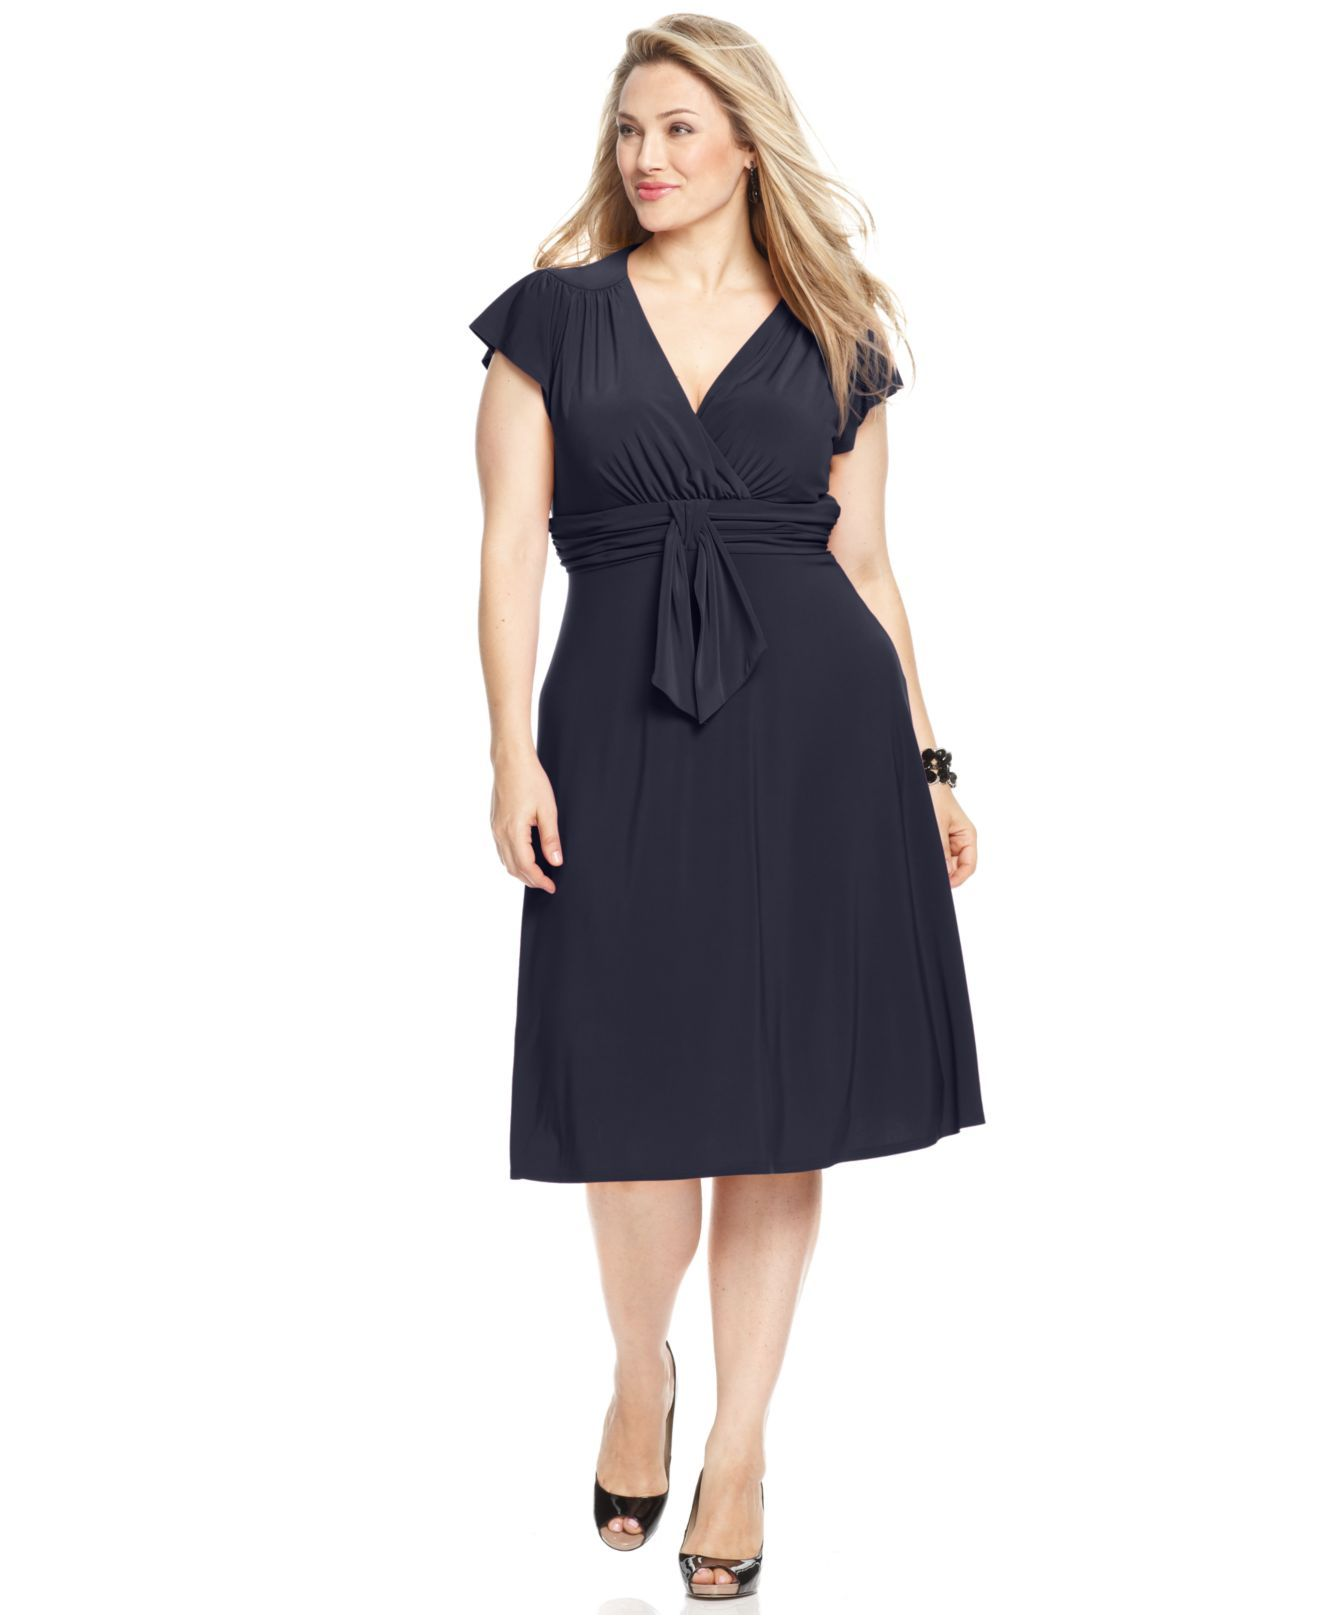 Jones New York Plus Size Dress, Short-Sleeve A-Line - Plus Size ...